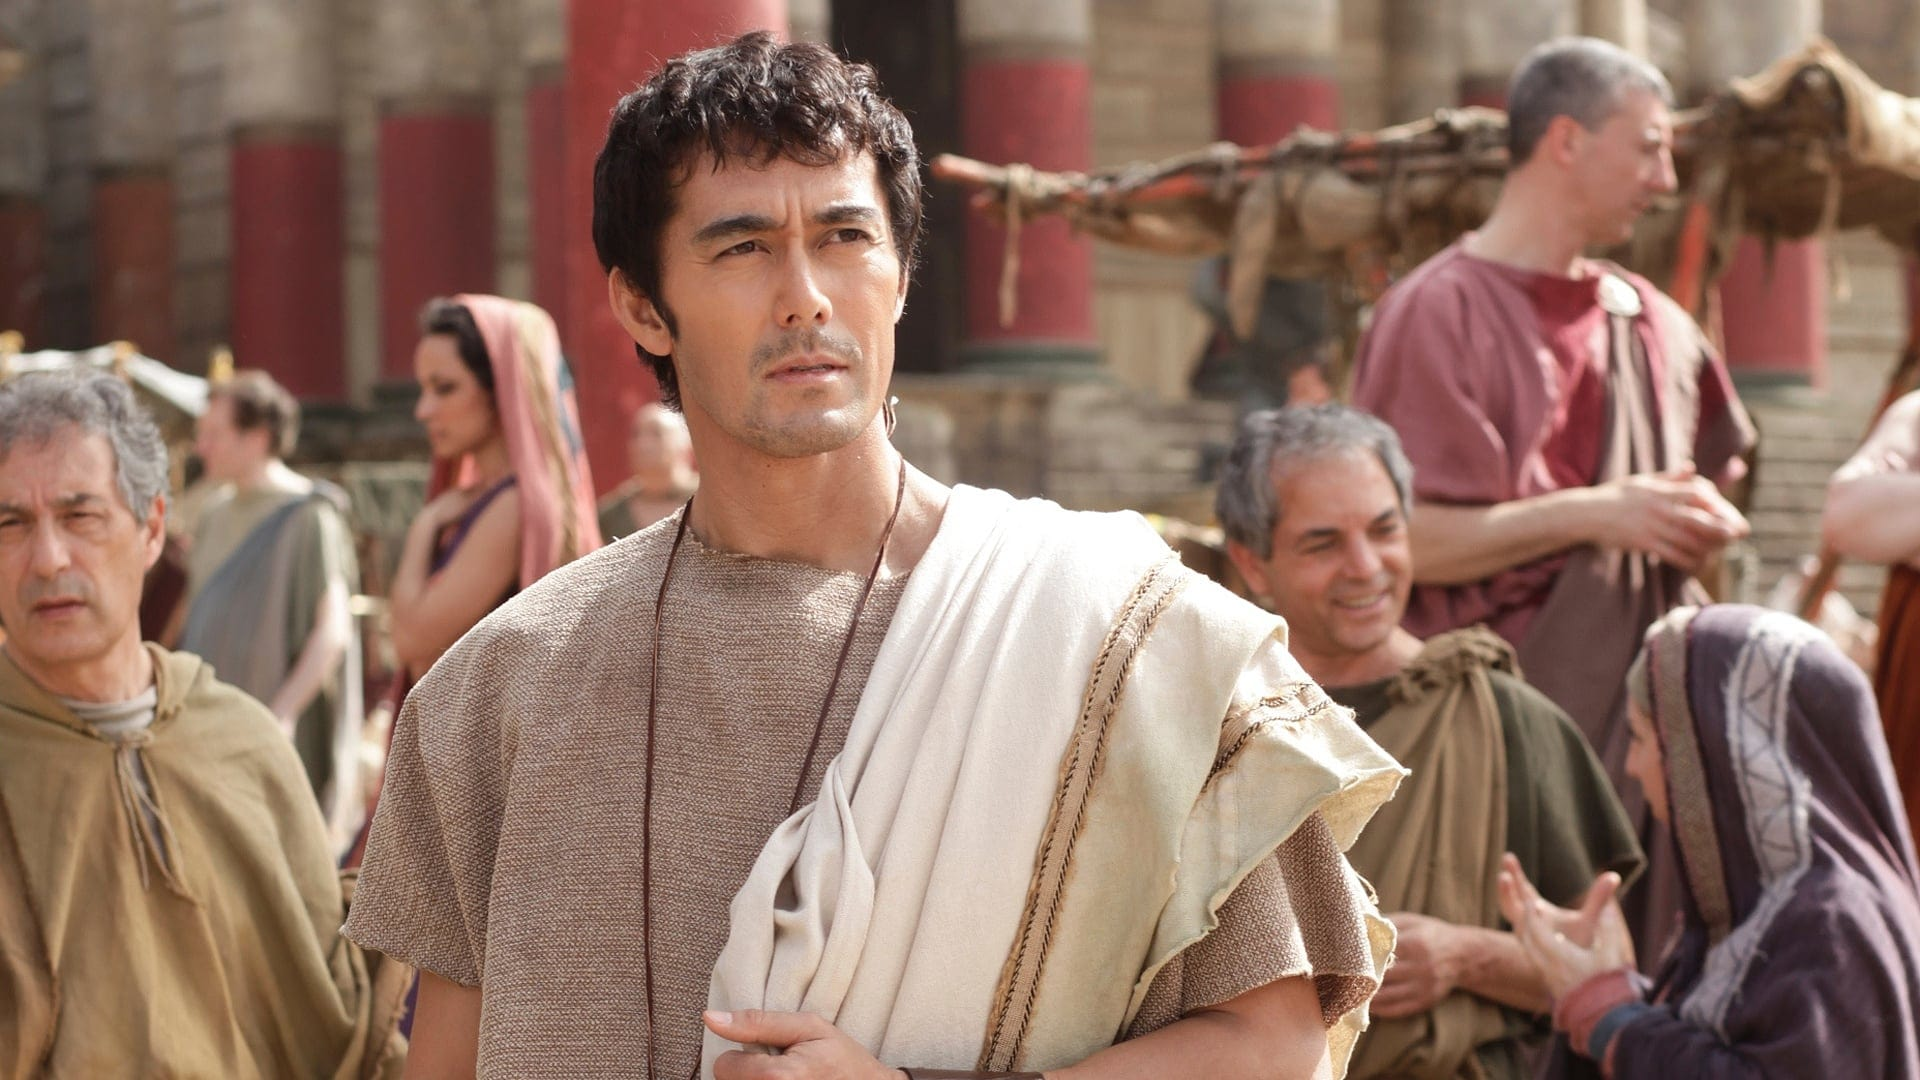 Regarder Thermae Romae en streaming gratuit